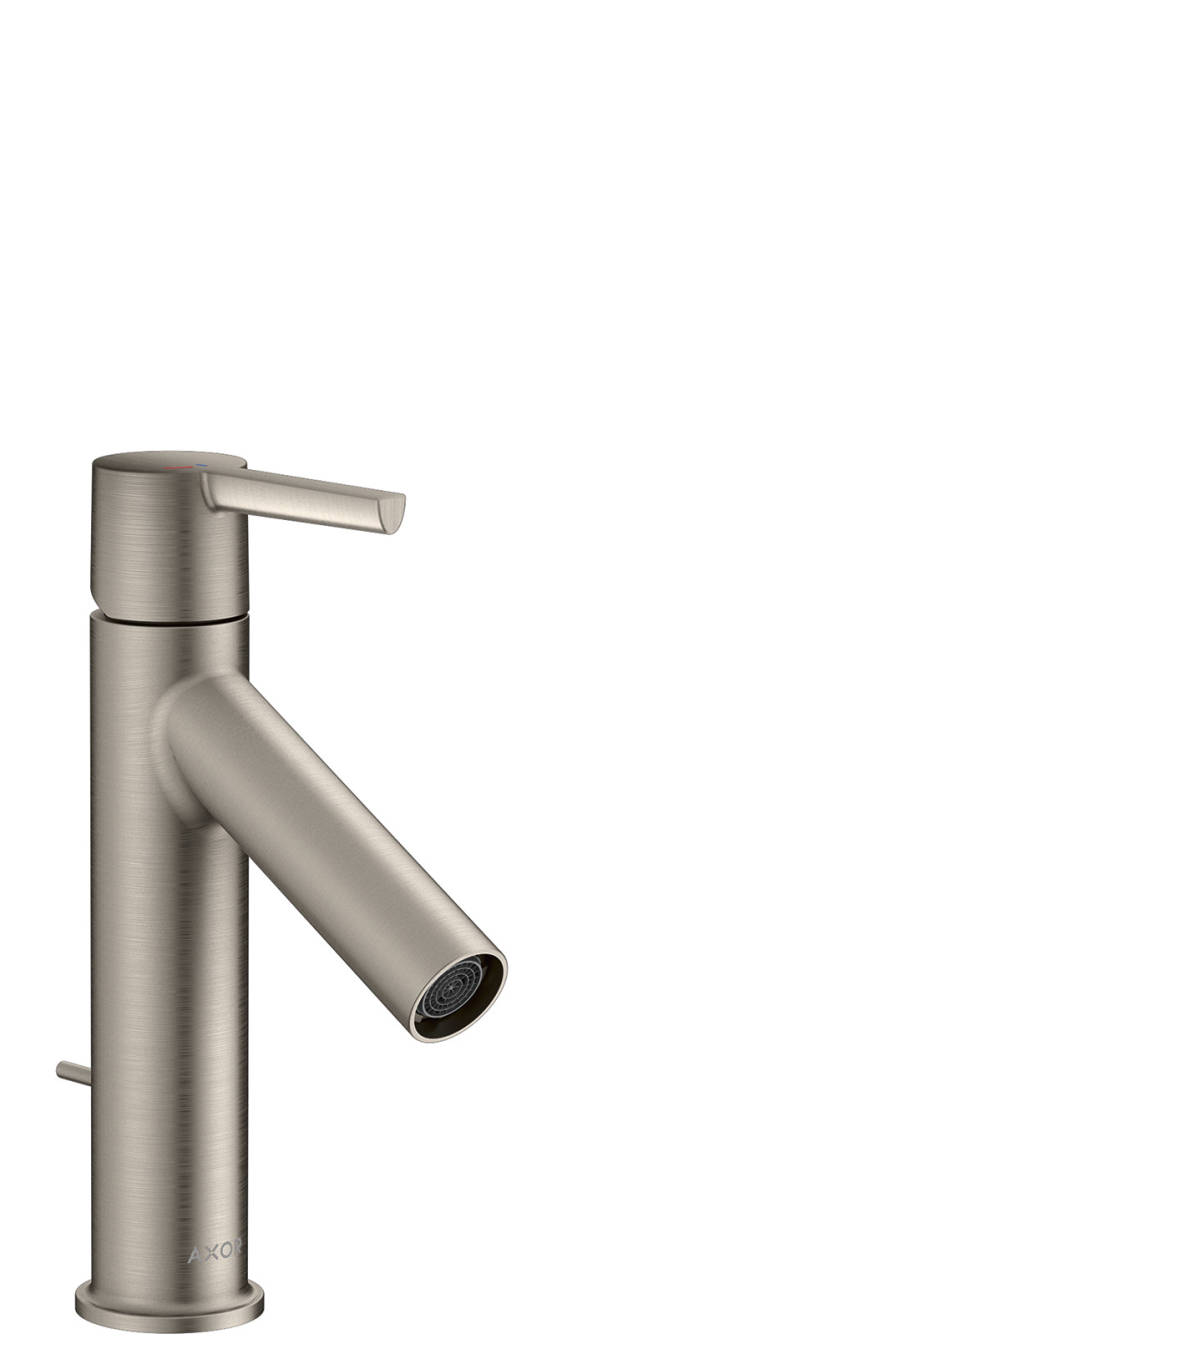 Single lever basin mixer 100 CoolStart with lever handle and pop-up waste set, Stainless Steel Optic, 10007800